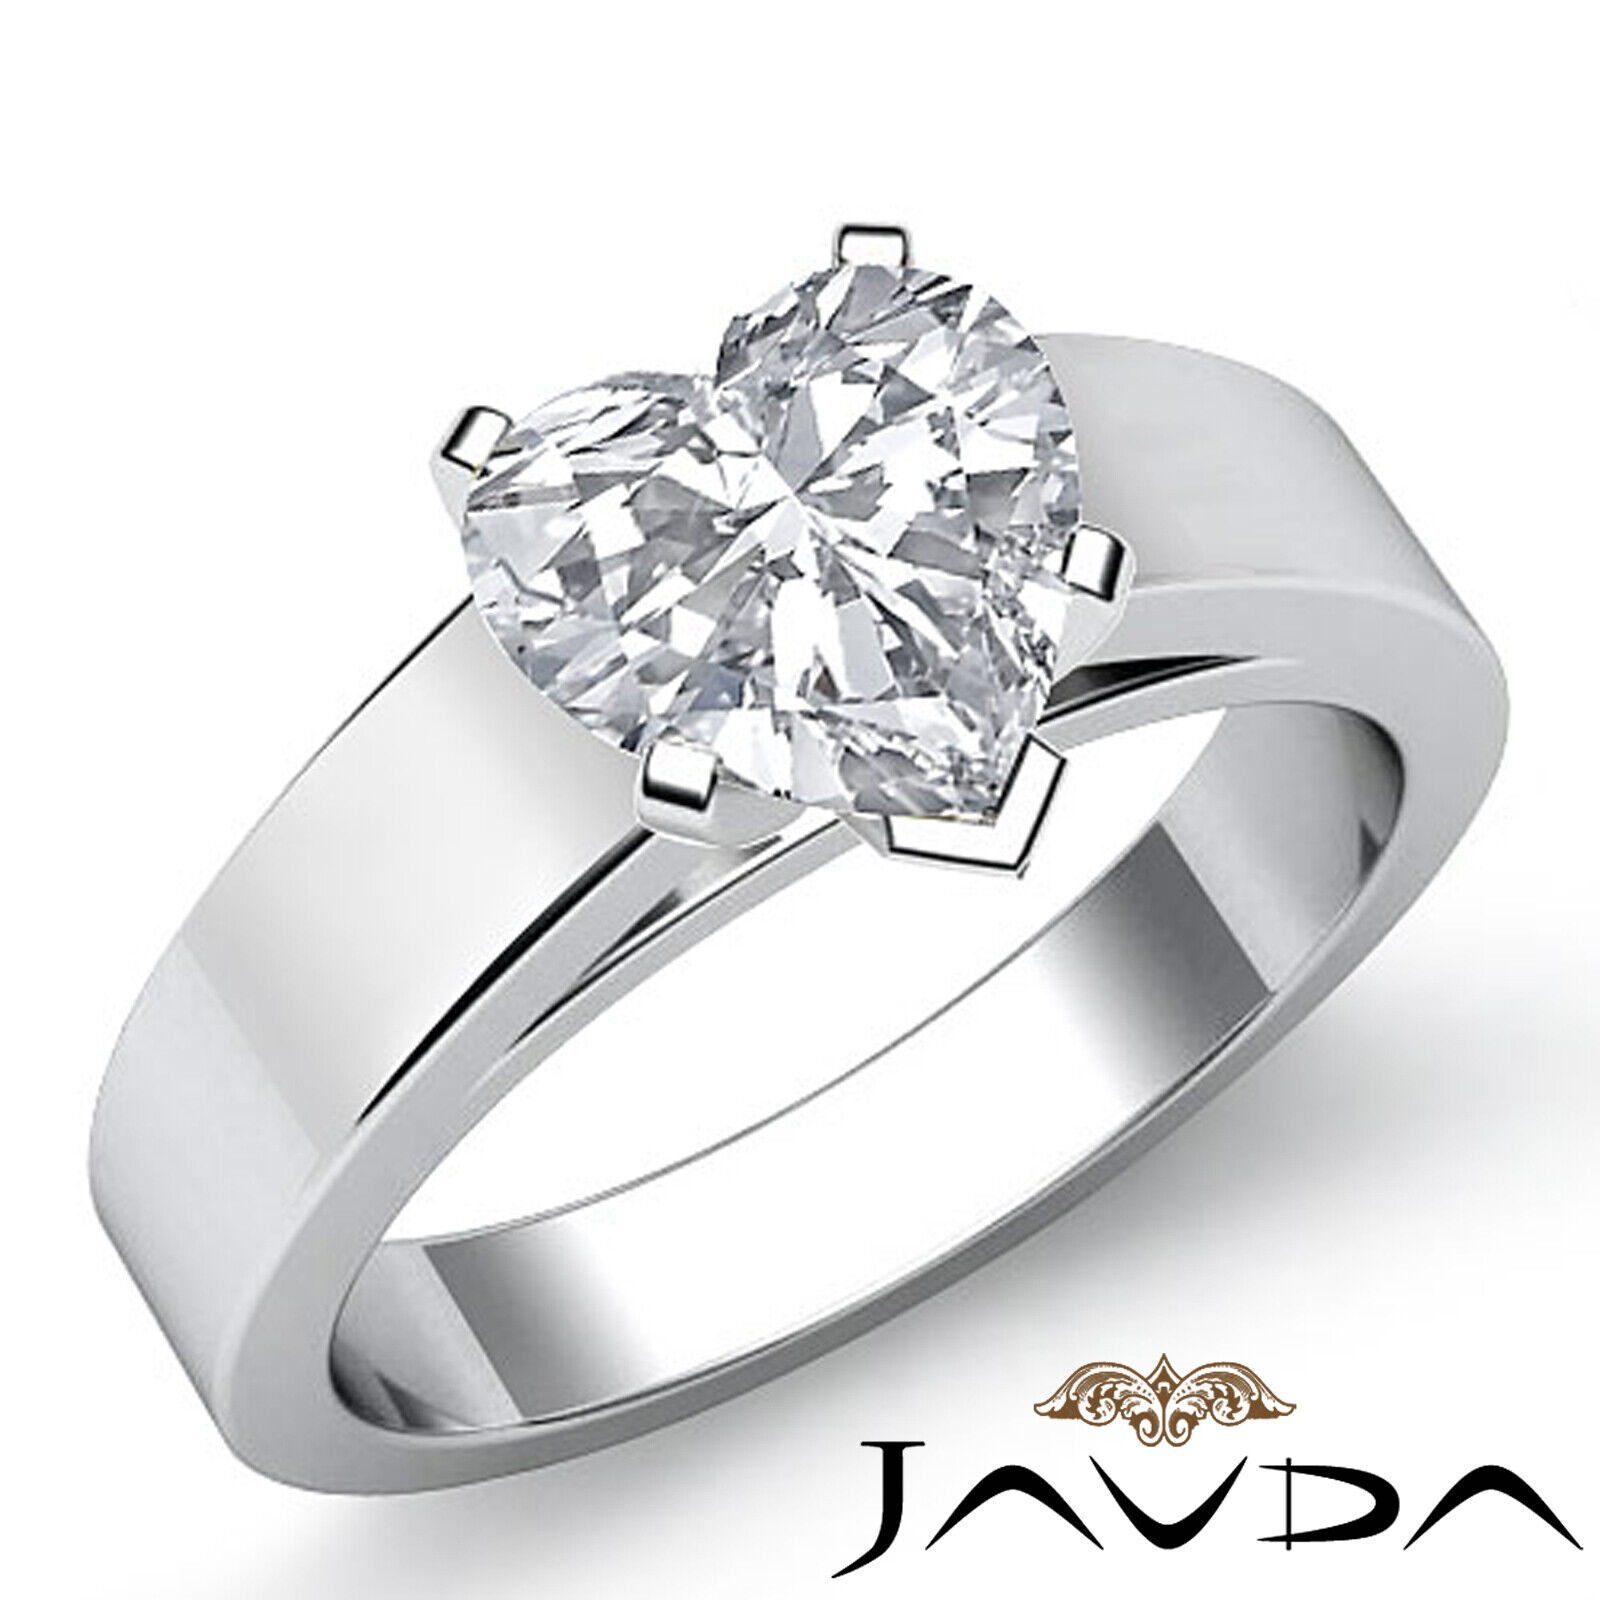 5.5mm Cathedral Solitaire Heart Diamond Engagement  GIA G SI1 Gold Ring 0.70 ct.